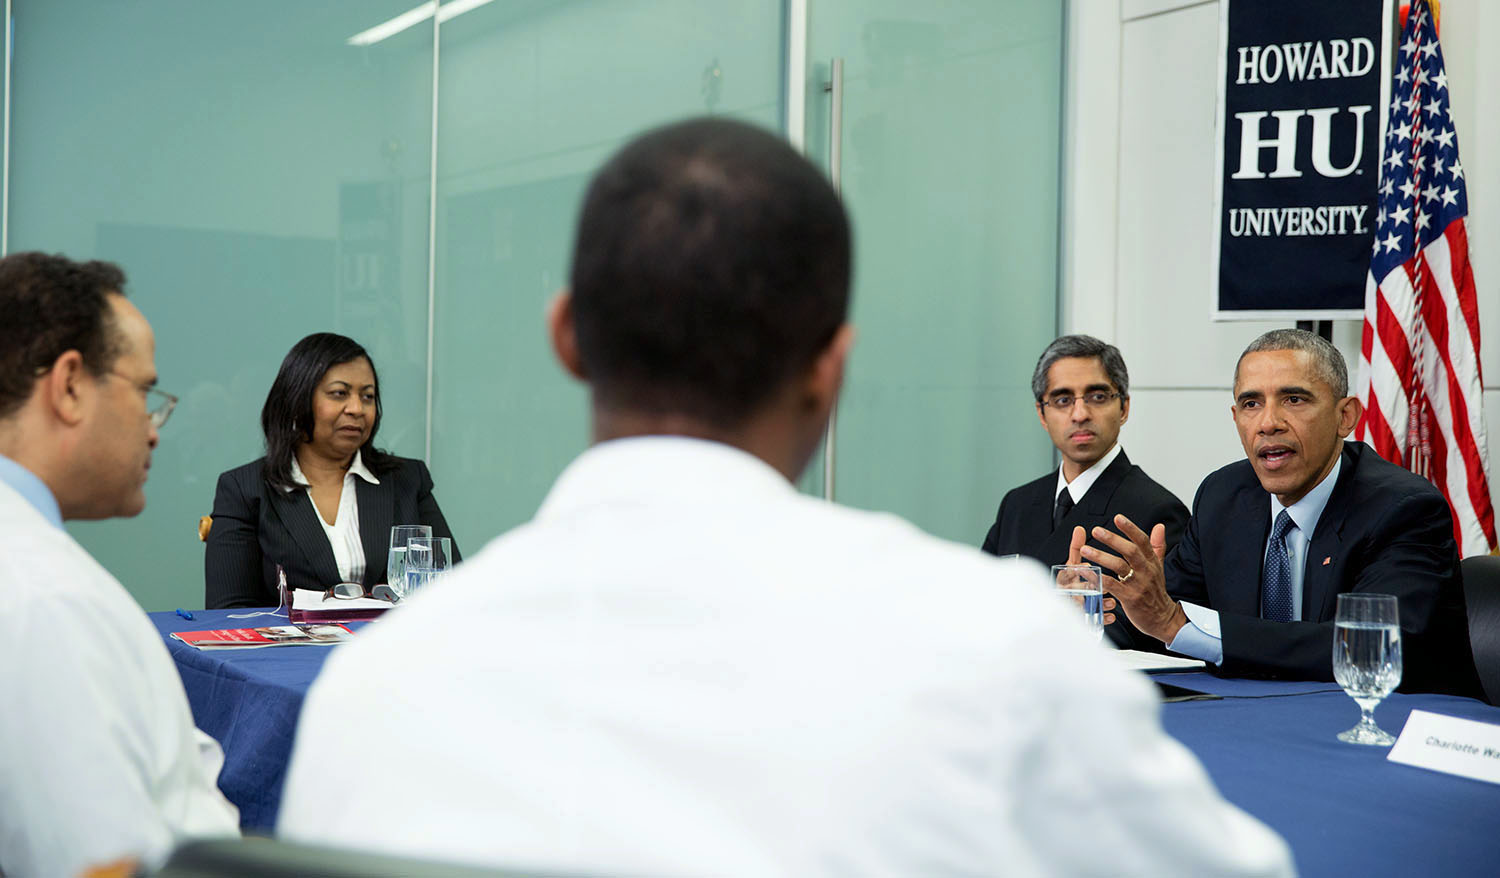 President Obama gives remarks at roundtable at Howard